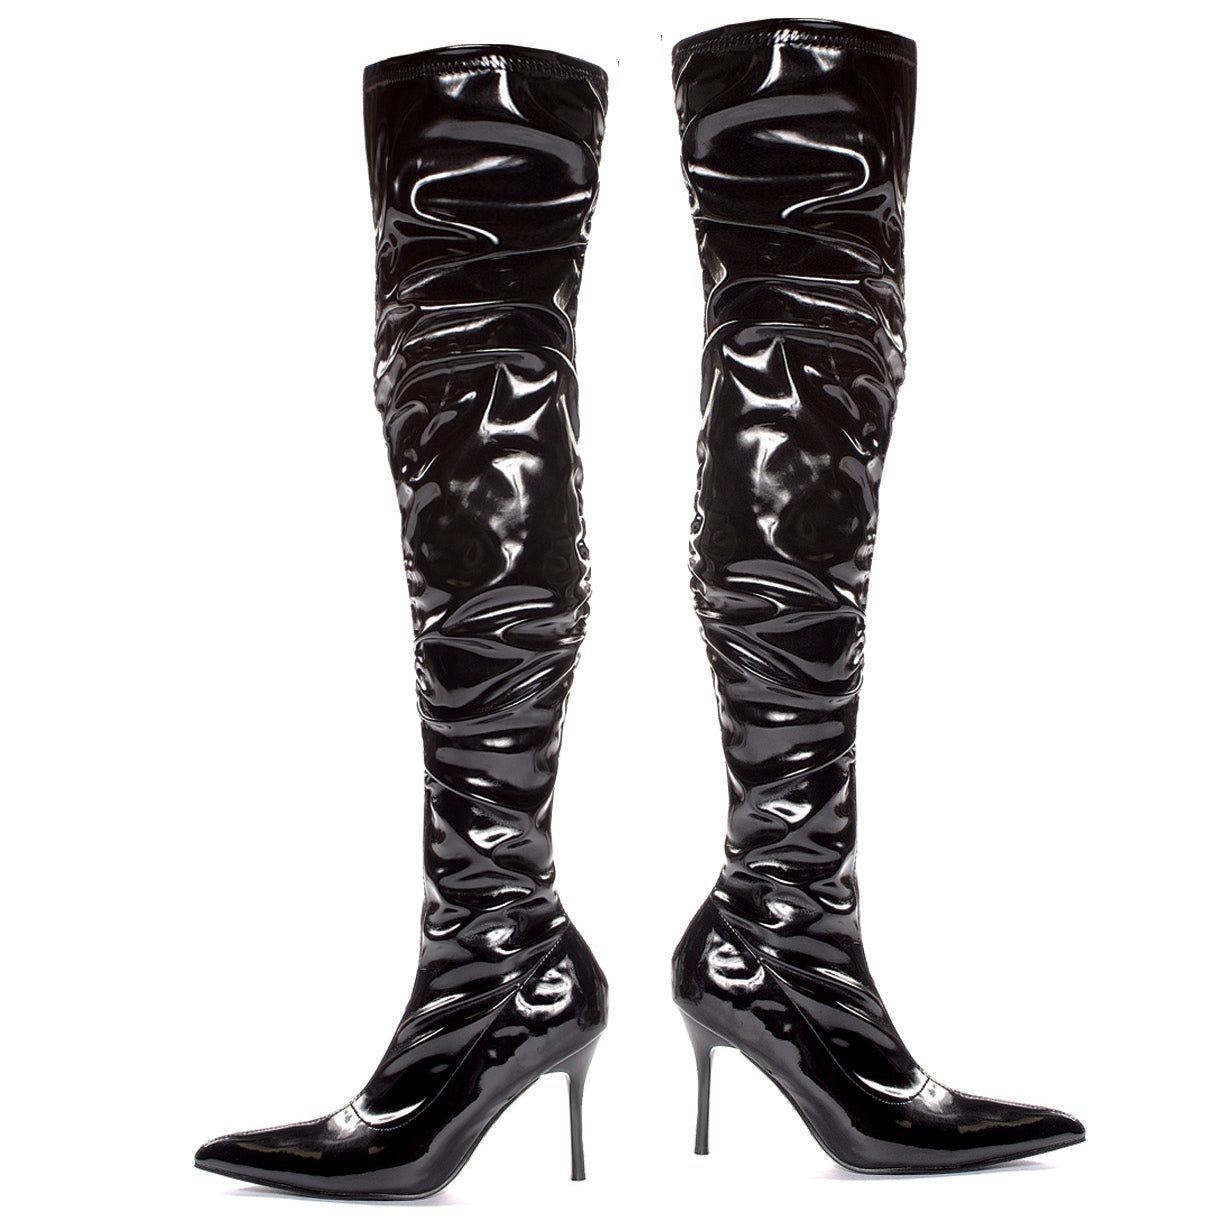 3.5 Faux Stretch Leather And Patent Thigh High With Ruching